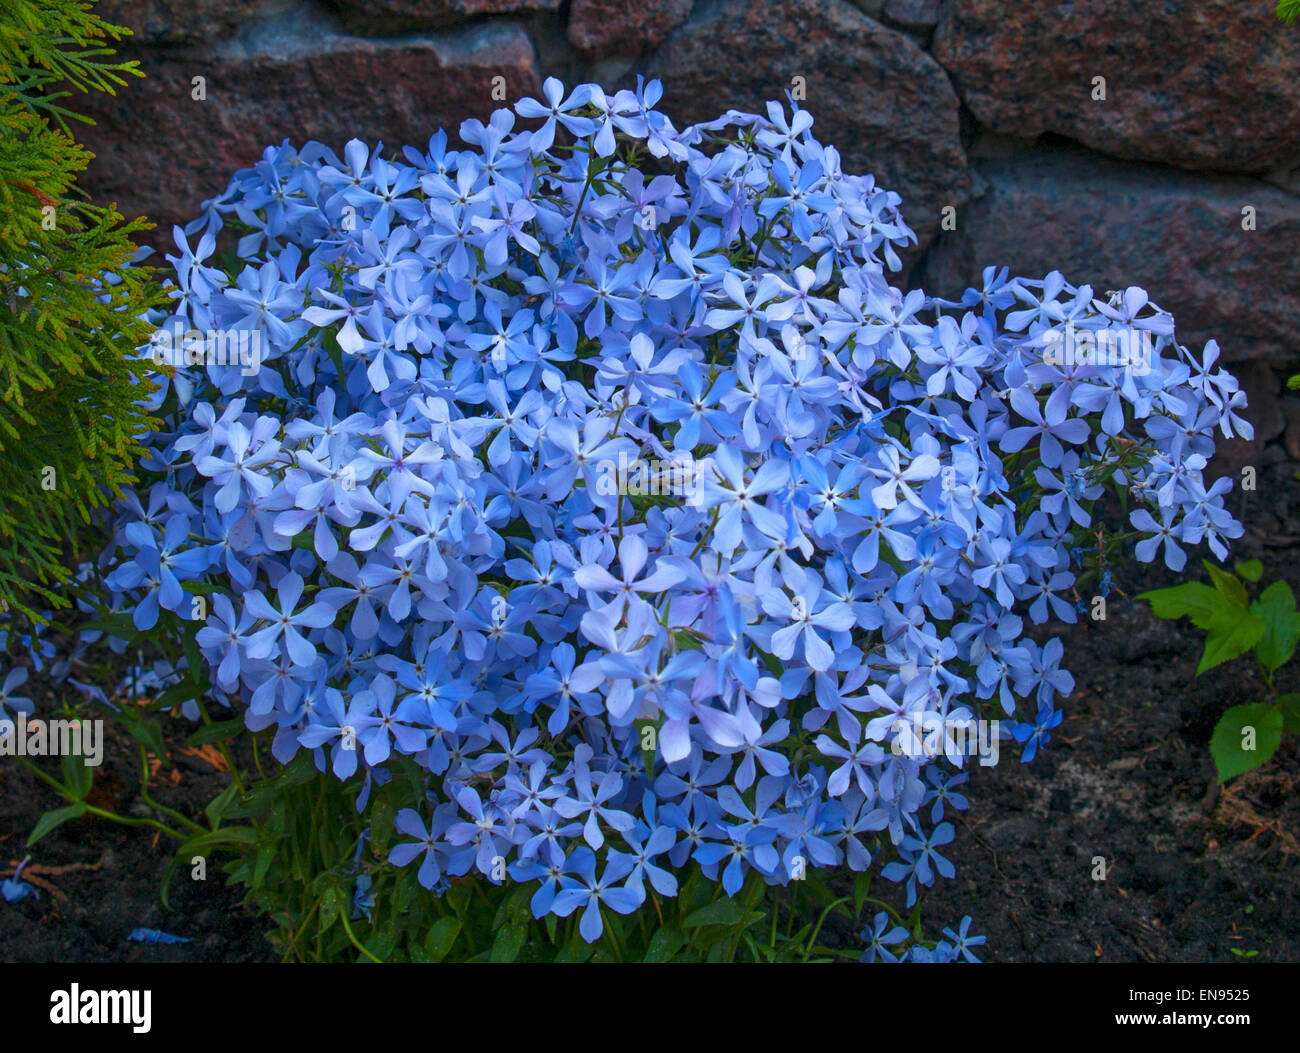 Blue Flower Bushes In Florida Blue Celtic Border Designs Clipart